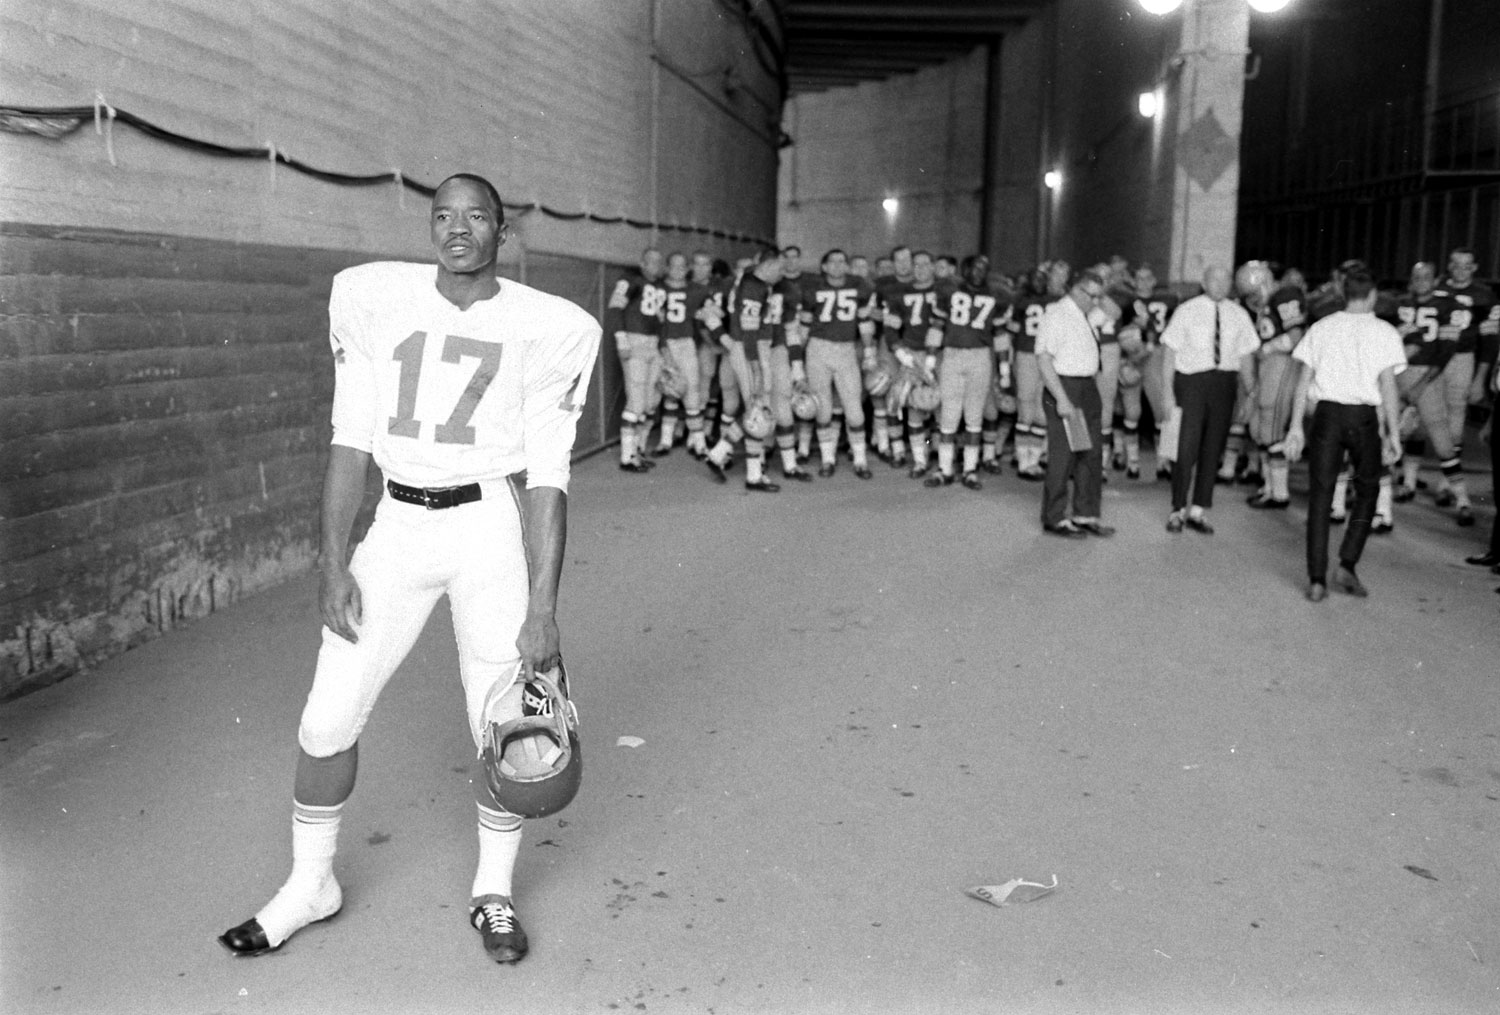 <b>Not published in LIFE.</b> Kansas City's Fletcher Smith, with the Green Bay Packers massed behind him, prior to the start of Super Bowl I, Los Angeles, 1967.